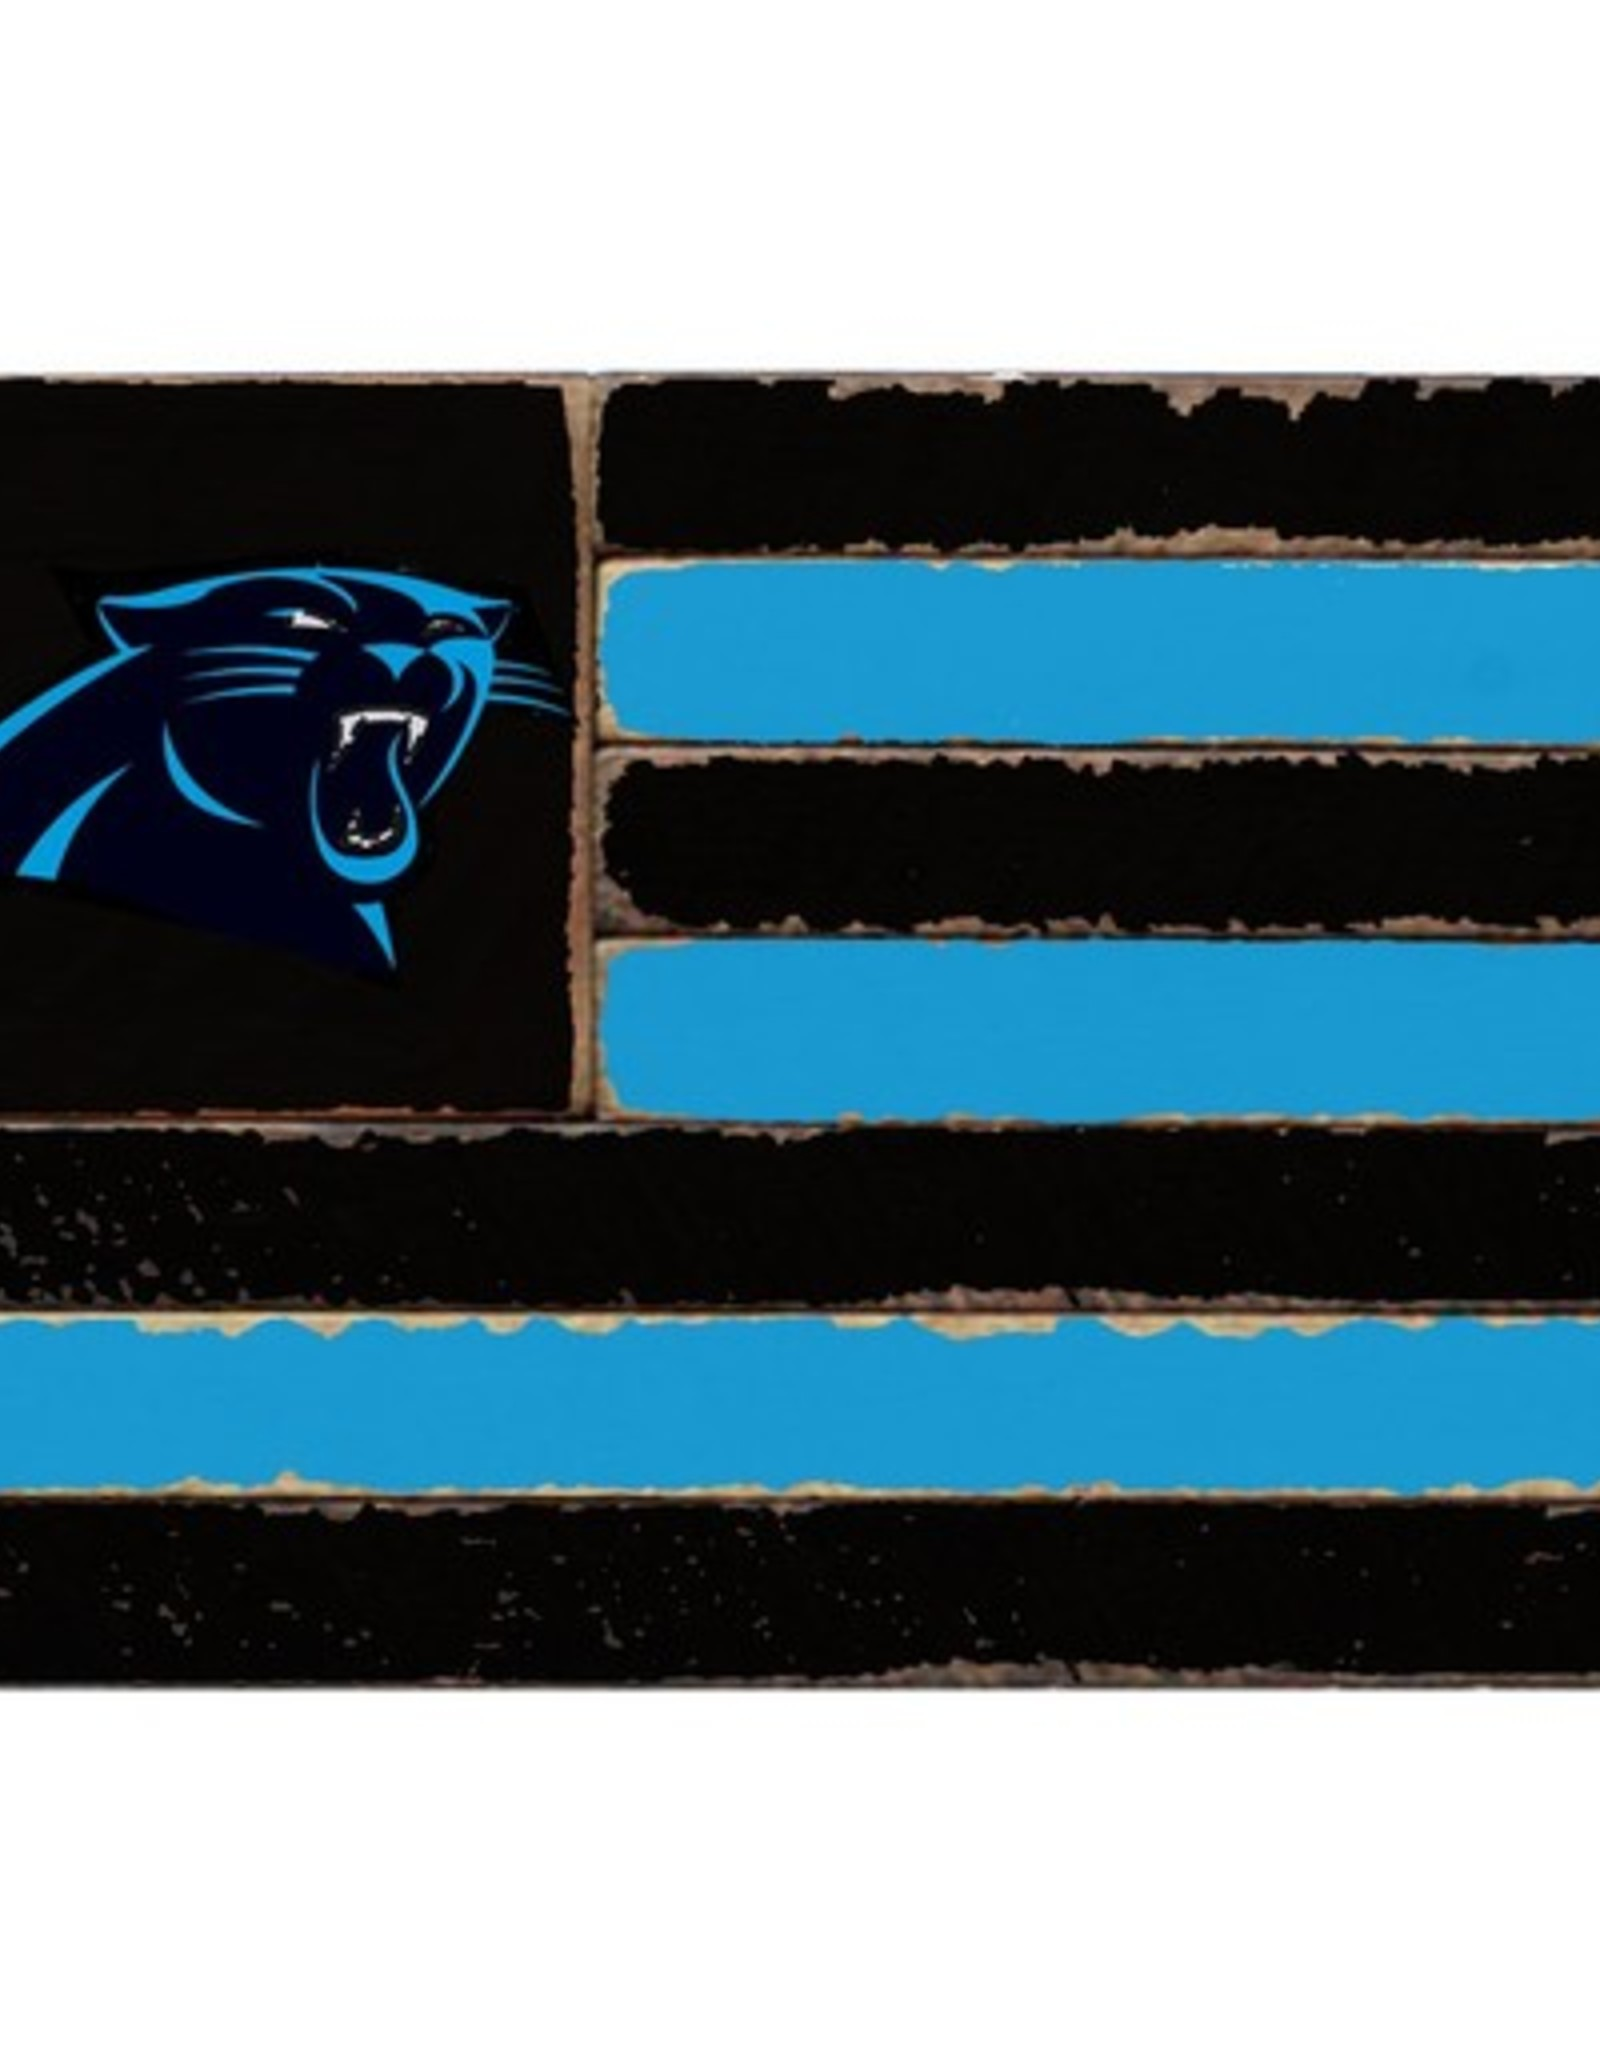 RUSTIC MARLIN Carolina Panthers Rustic Team Flag